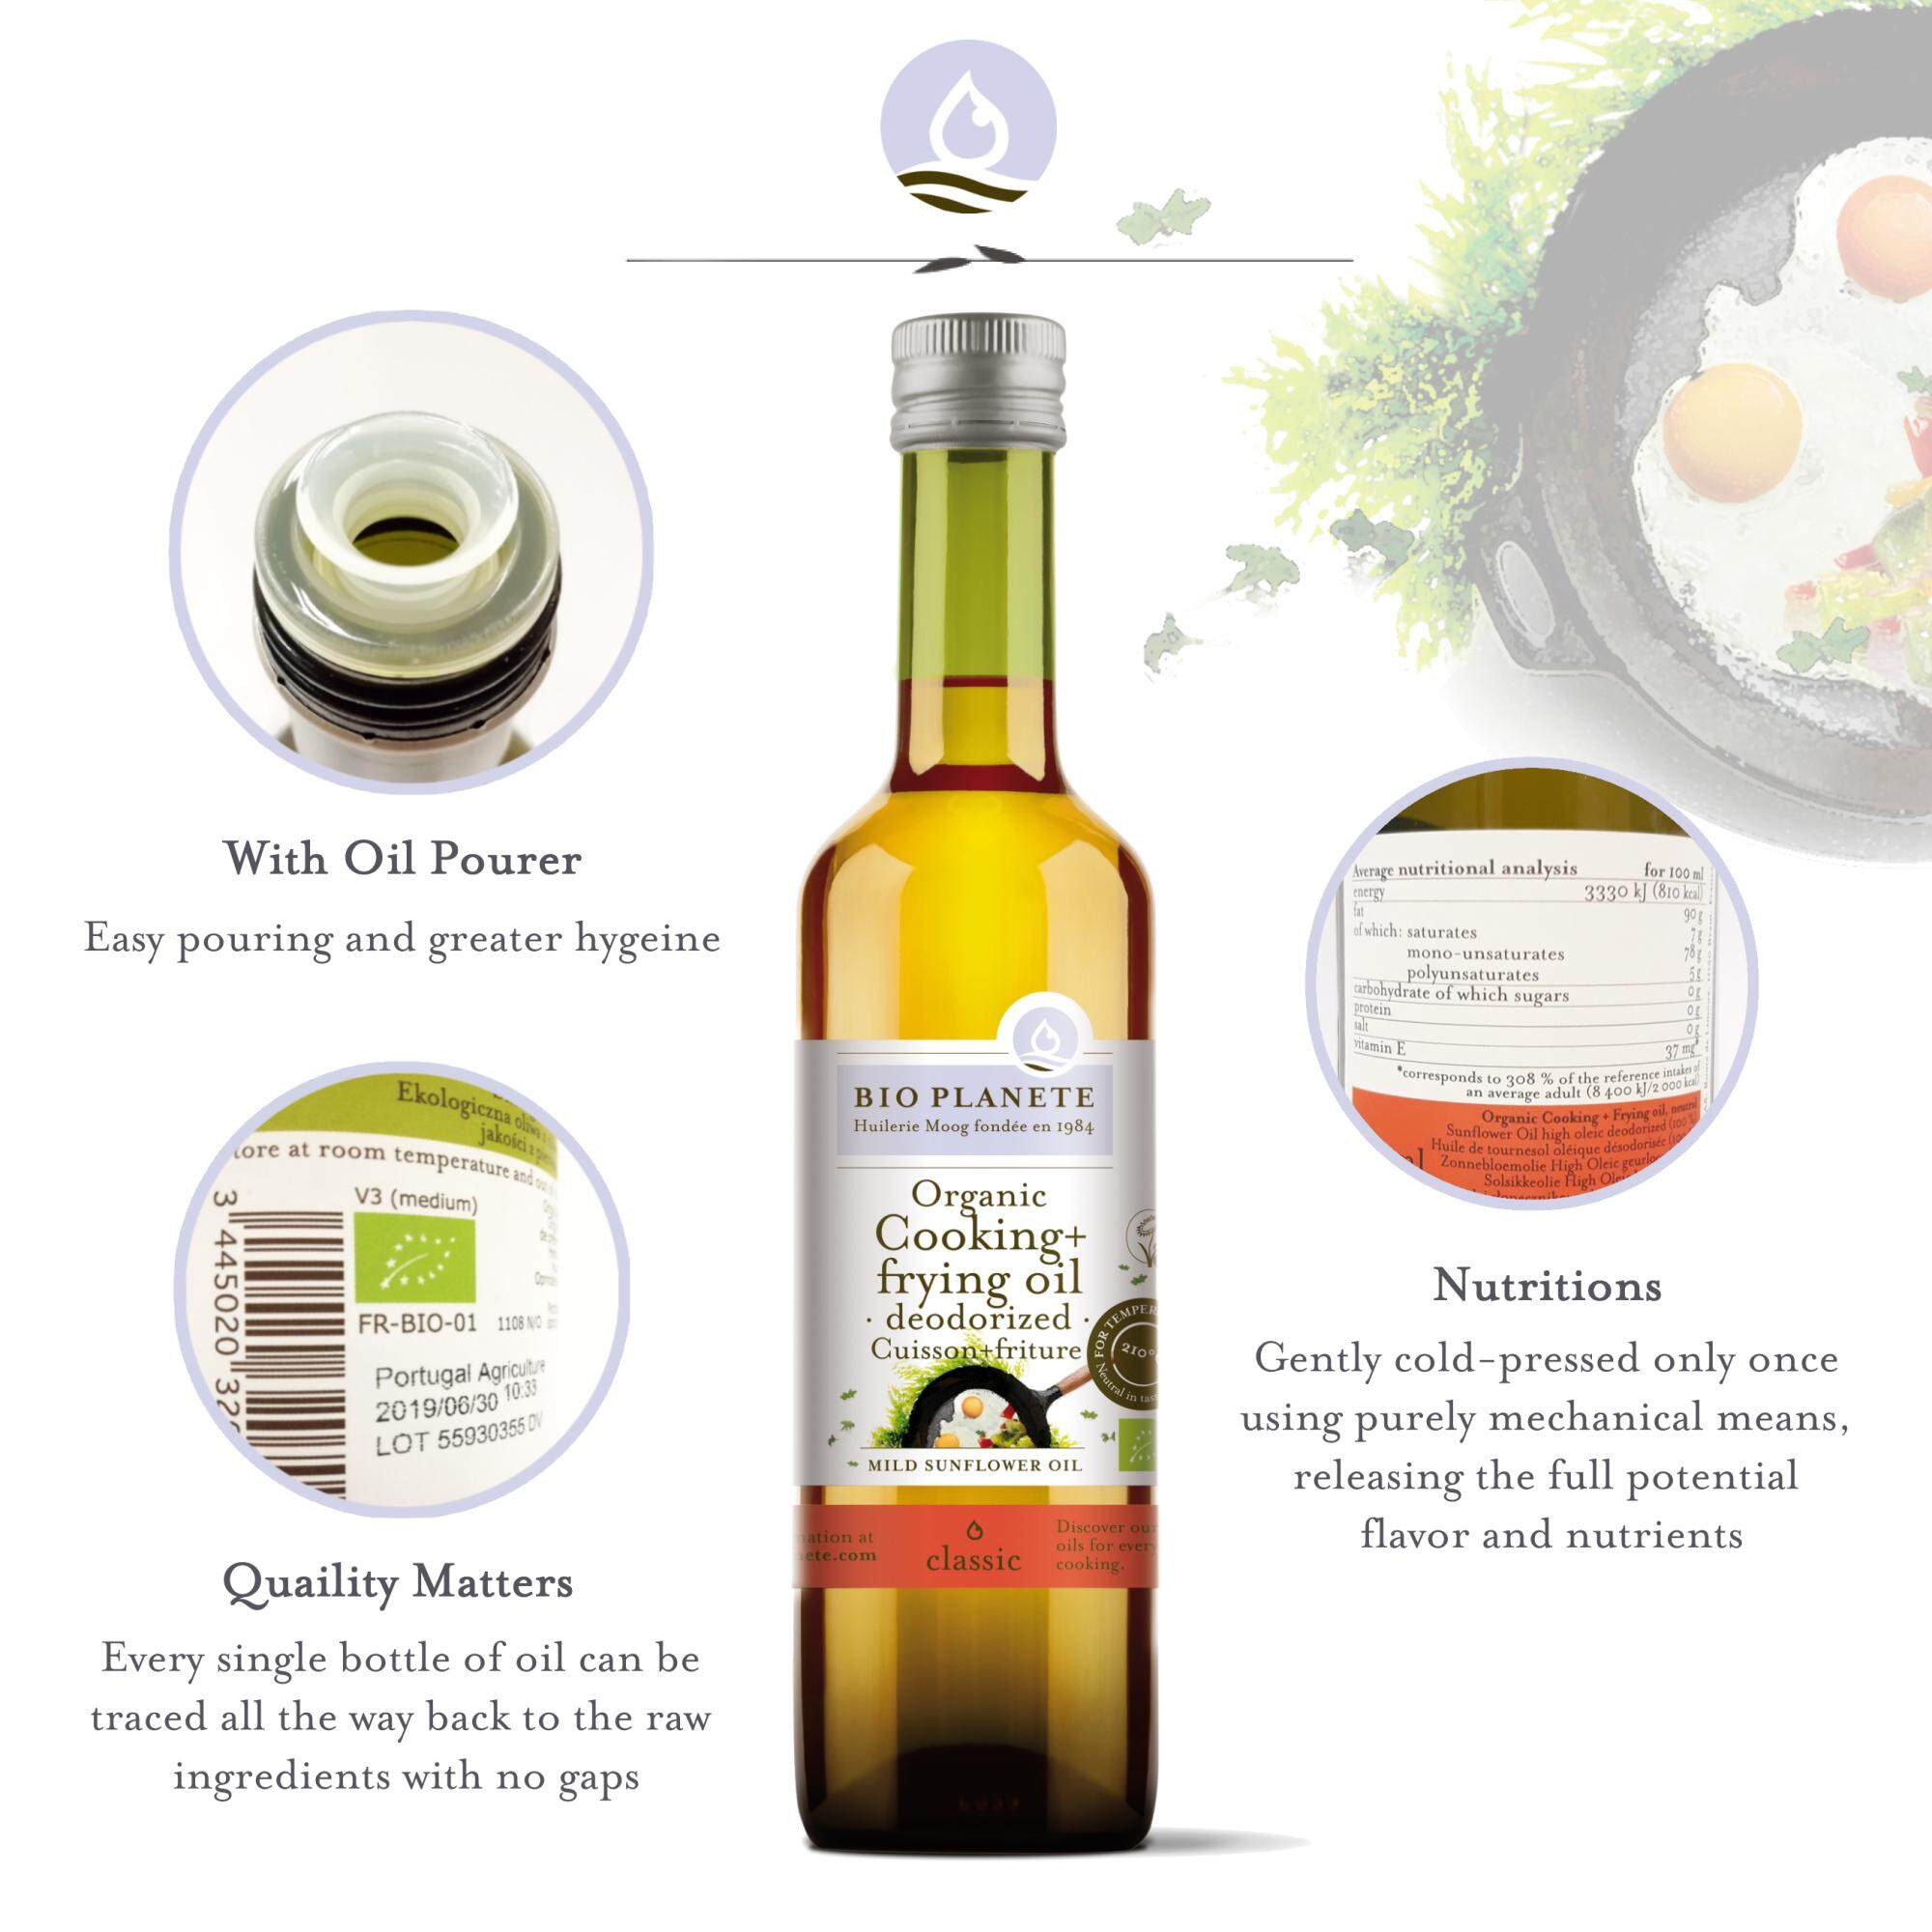 BIO PLANETE Organic Cooking Oil Sunflower Oil (500ml) - Frying and Cooking Origin from France - Bio Planete 有机热炒葵花油 (500毫升)